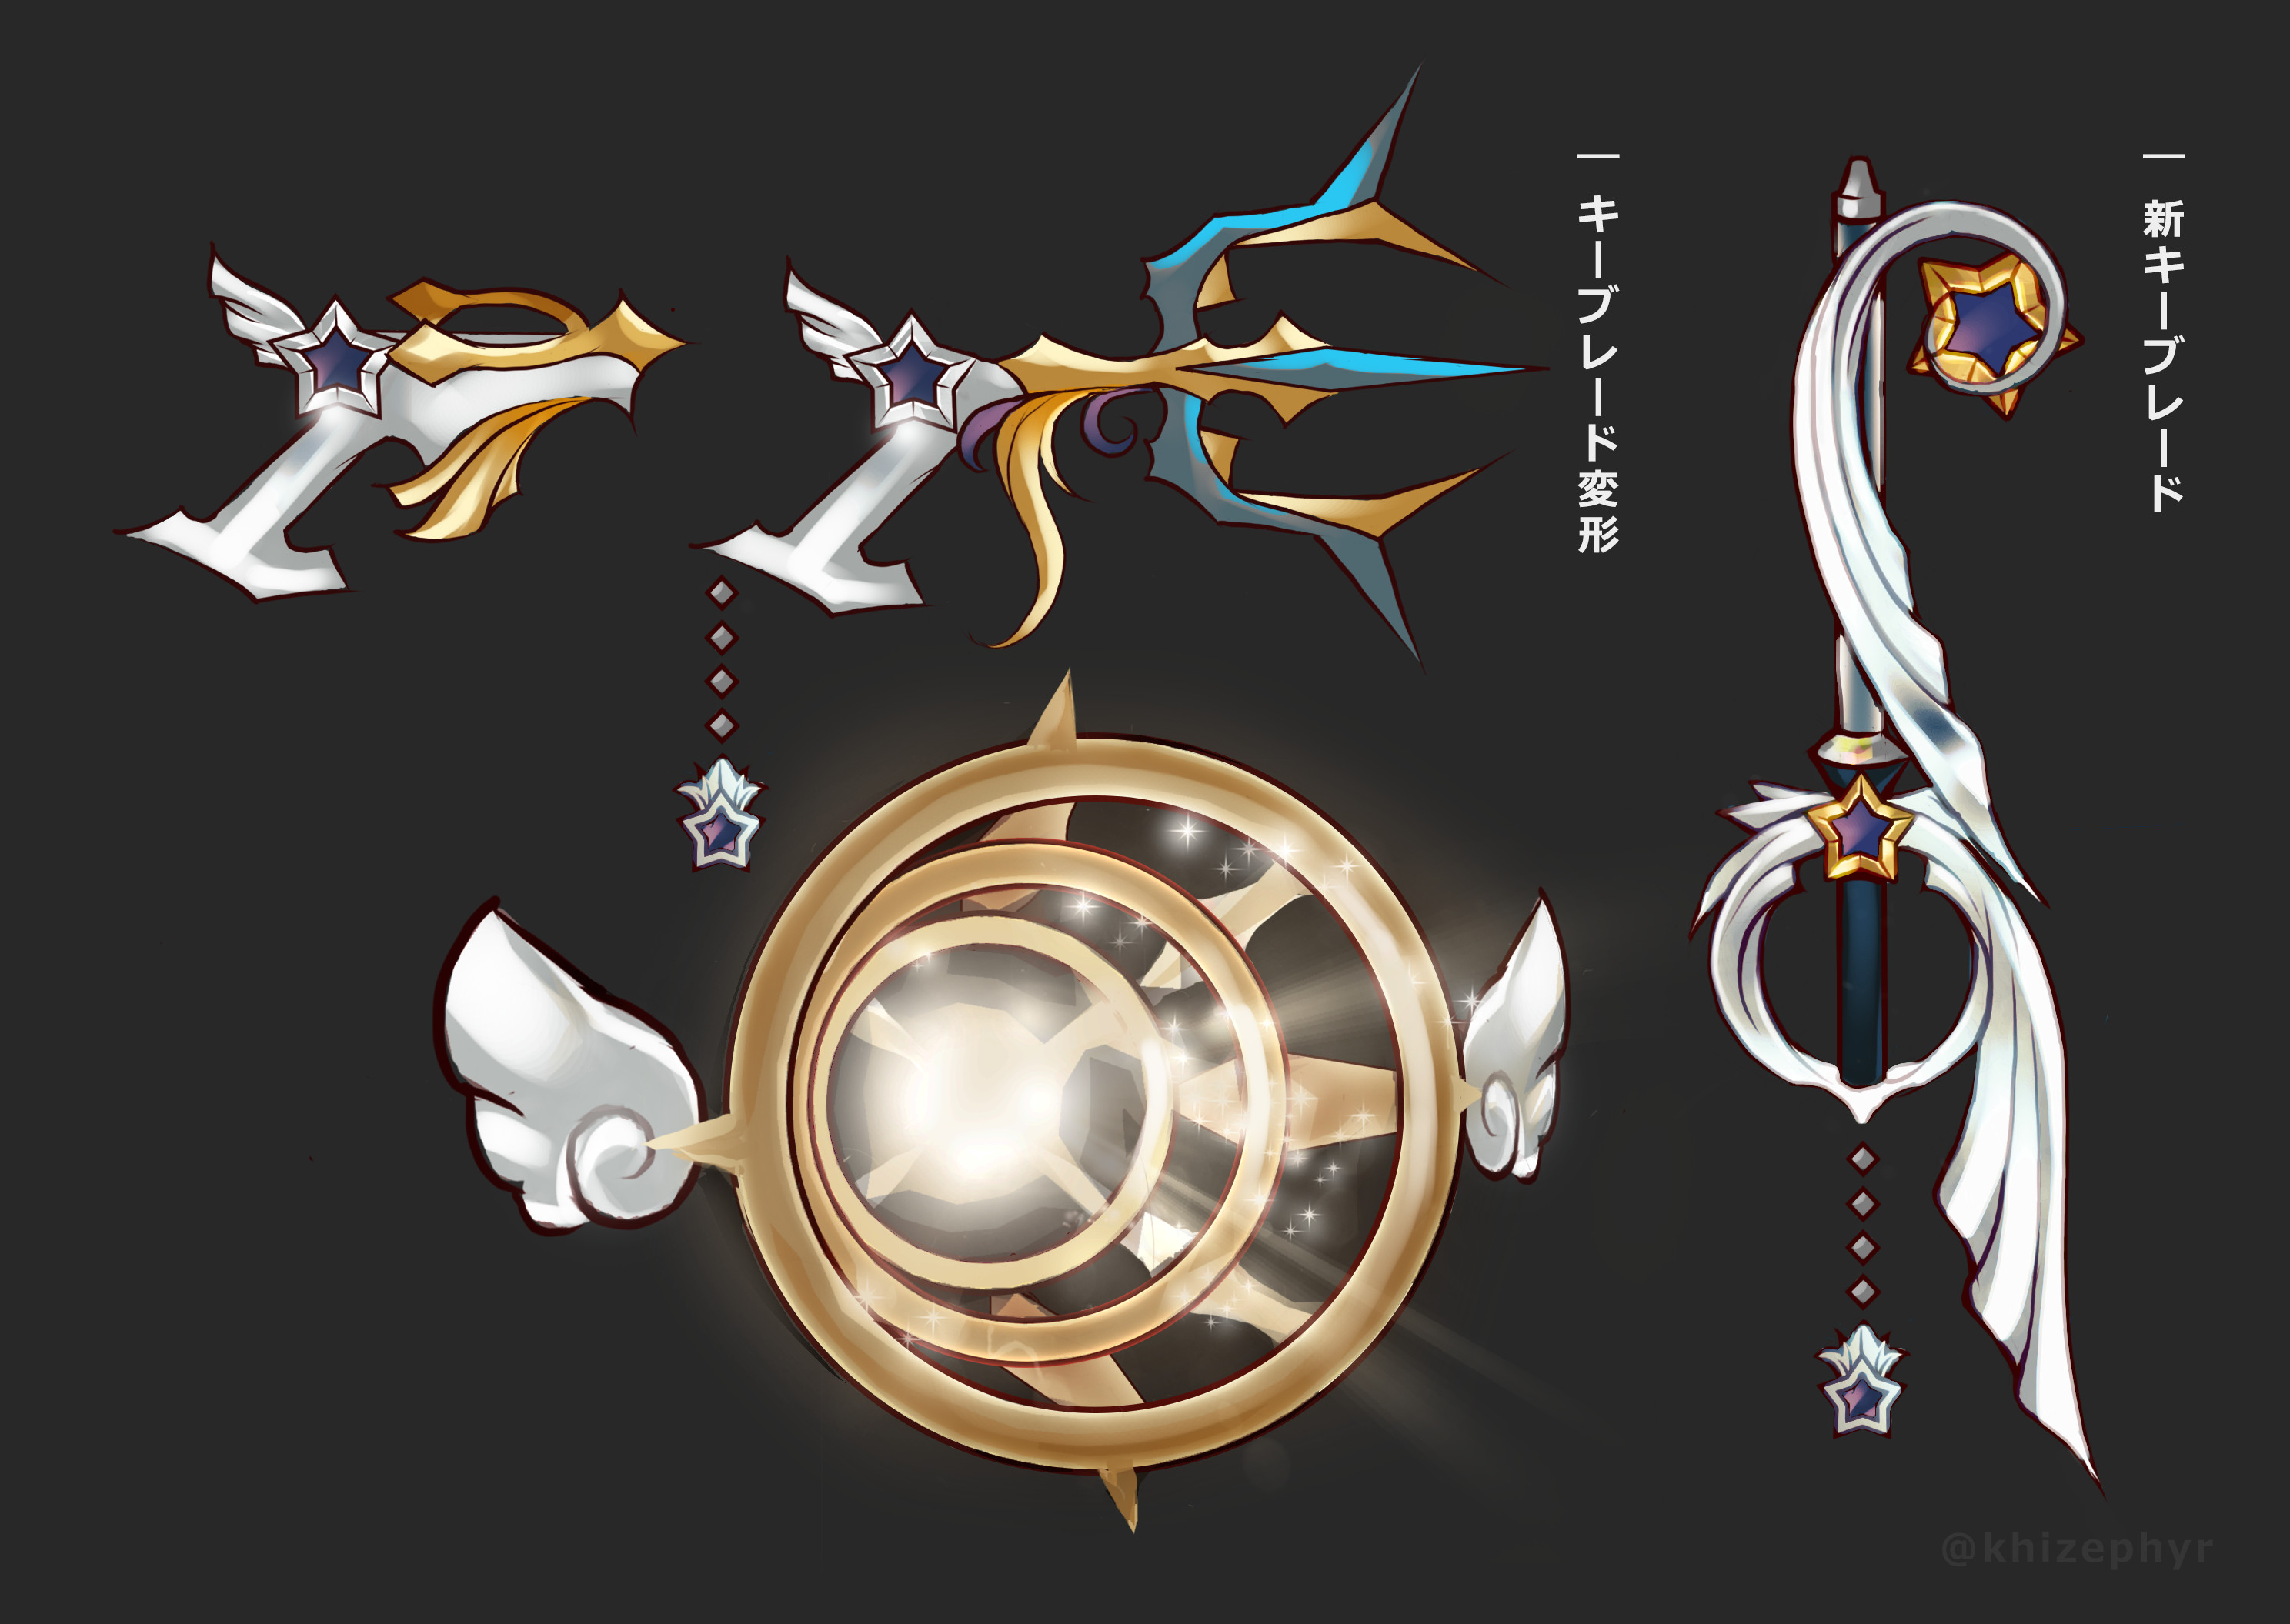 KHI Rendition of Sora's Keyblade & Transformations from KH3 Footage